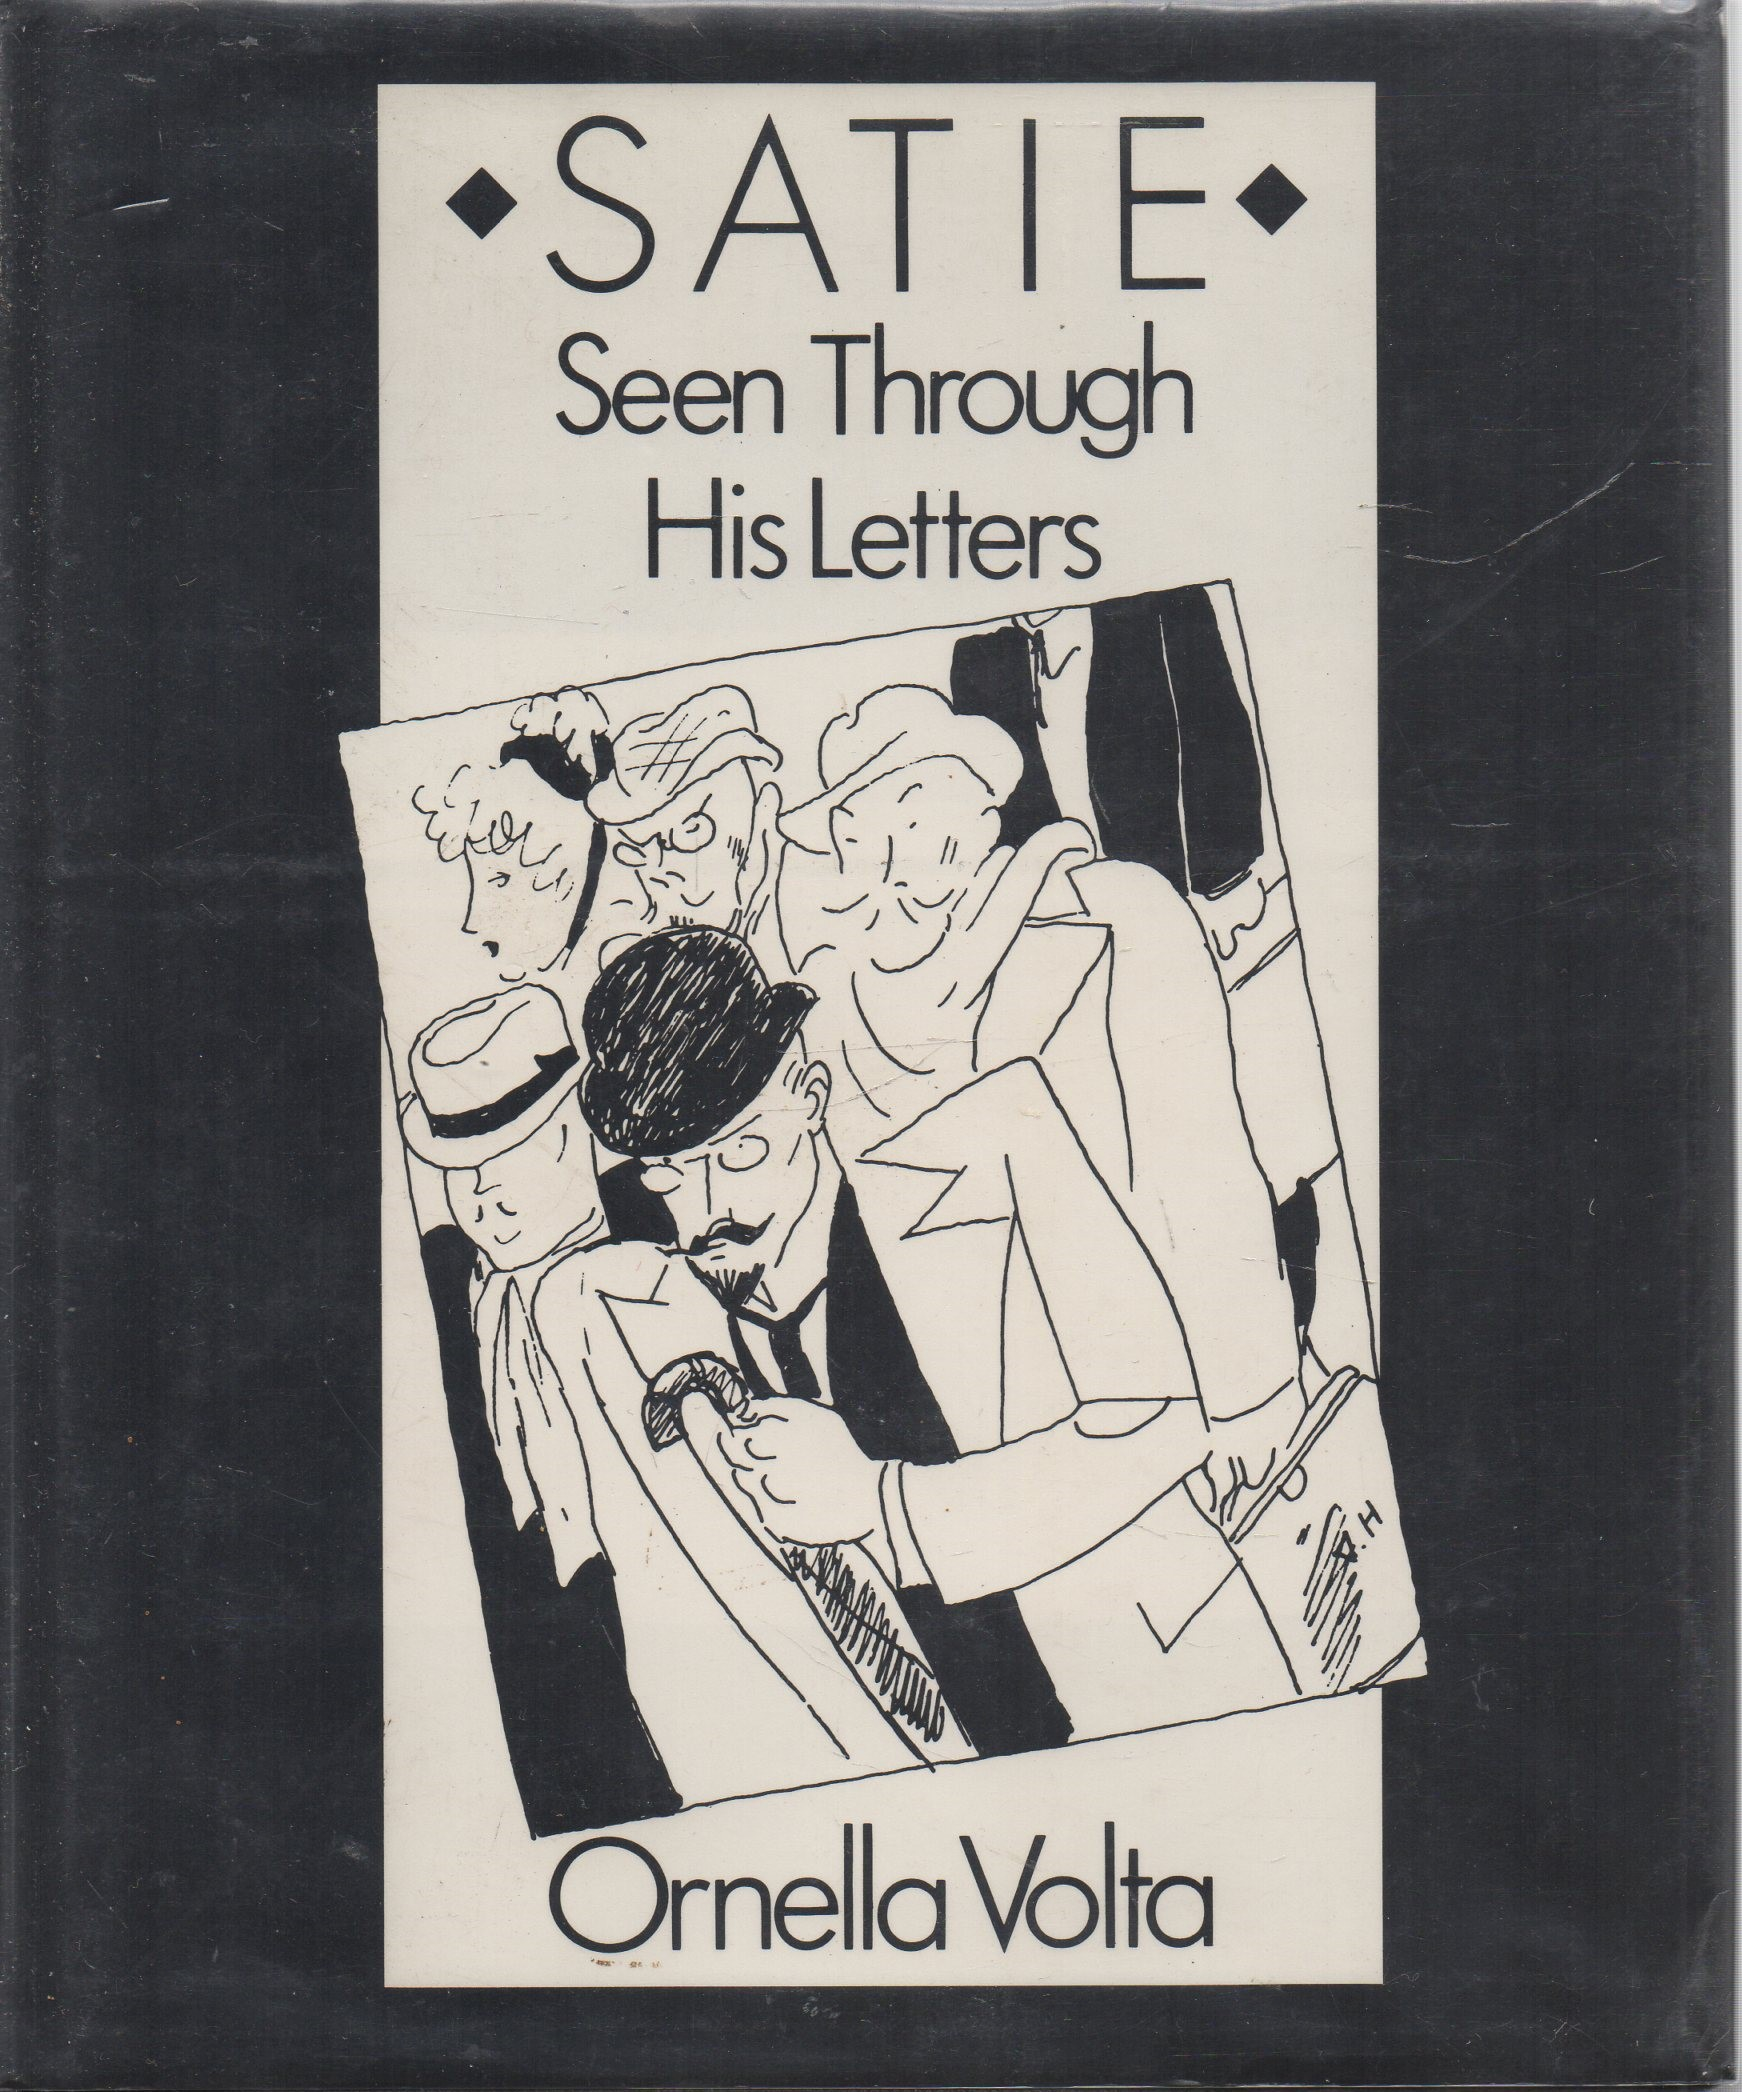 VOLTA, ORNELLA (MICHAEL BULLOCK, TRANS.; INTRODUCTION BY JOHN CAGE) - Satie  Seen Through His Letters